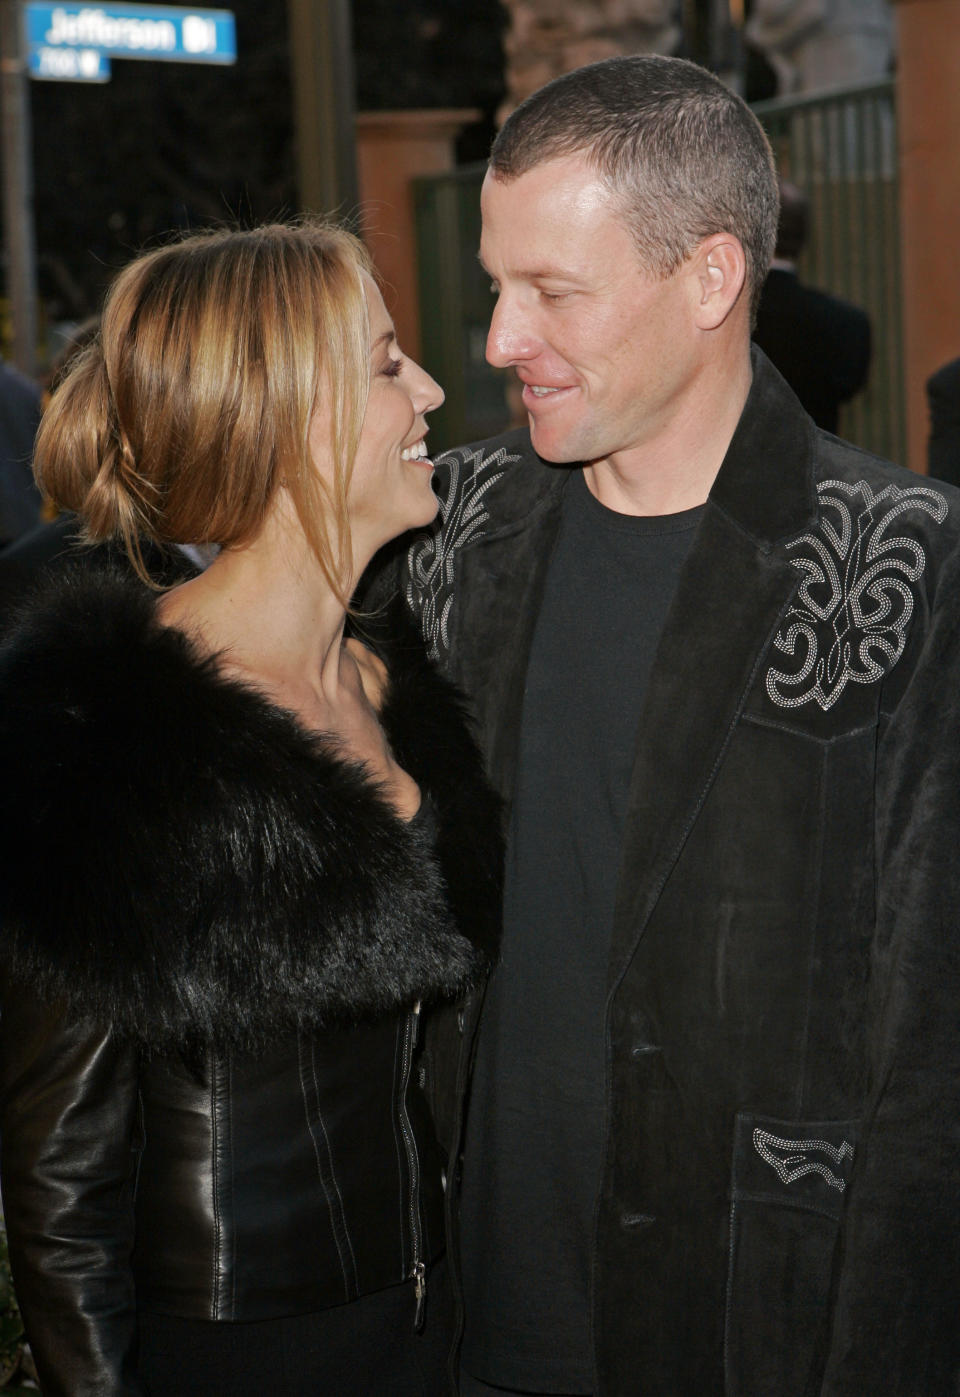 Sheryl Crow and Lance Armstrong at the American Music Awards in 2005. (Photo: AP/Kevork Djansezian)